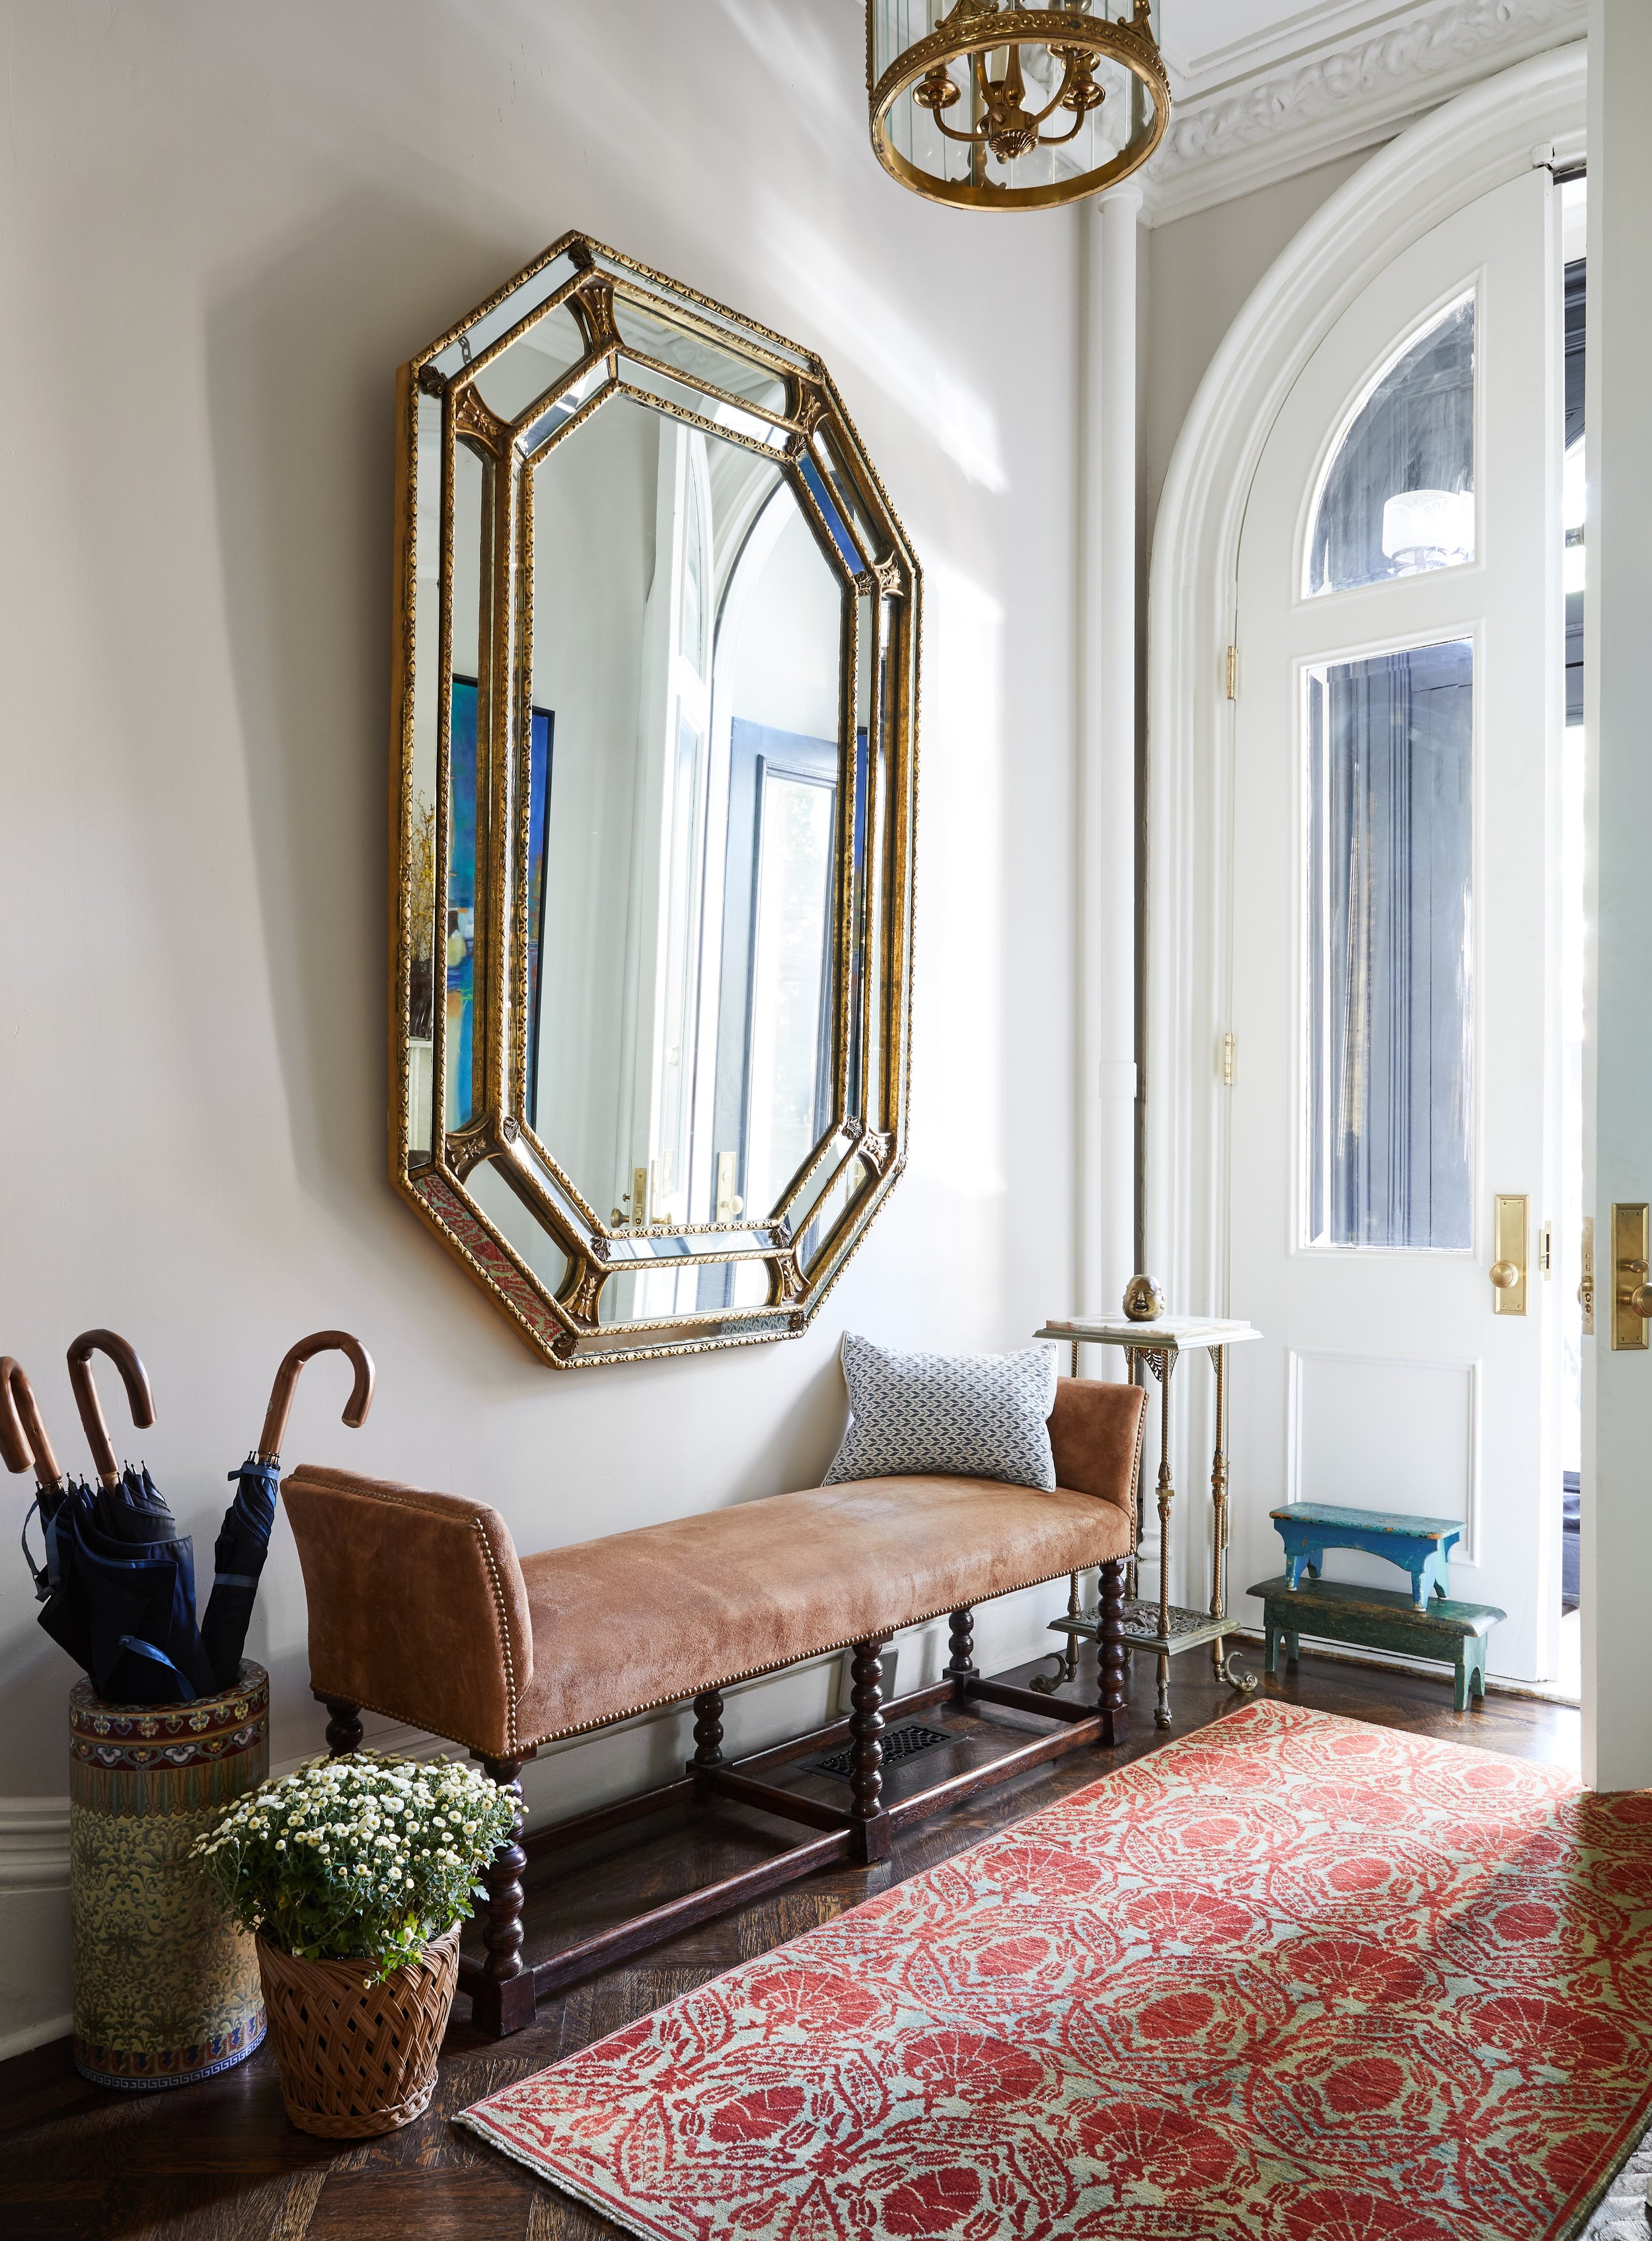 A foyer in a Brooklyn townhouse with an antique oversized gilt mirror from Vidal's, a rug from ABC Carpet, antique hand painted cricket stools, Francesco Maglia Lord Chestnut umbrellas from Mr. Porter in a vintage ceramic stand, a pillow from John Derian, a suede bench with nailheads from John Rosselli, and original mouldings and doors. Antique pendant light and bronze and marble table from Olde Good Things.